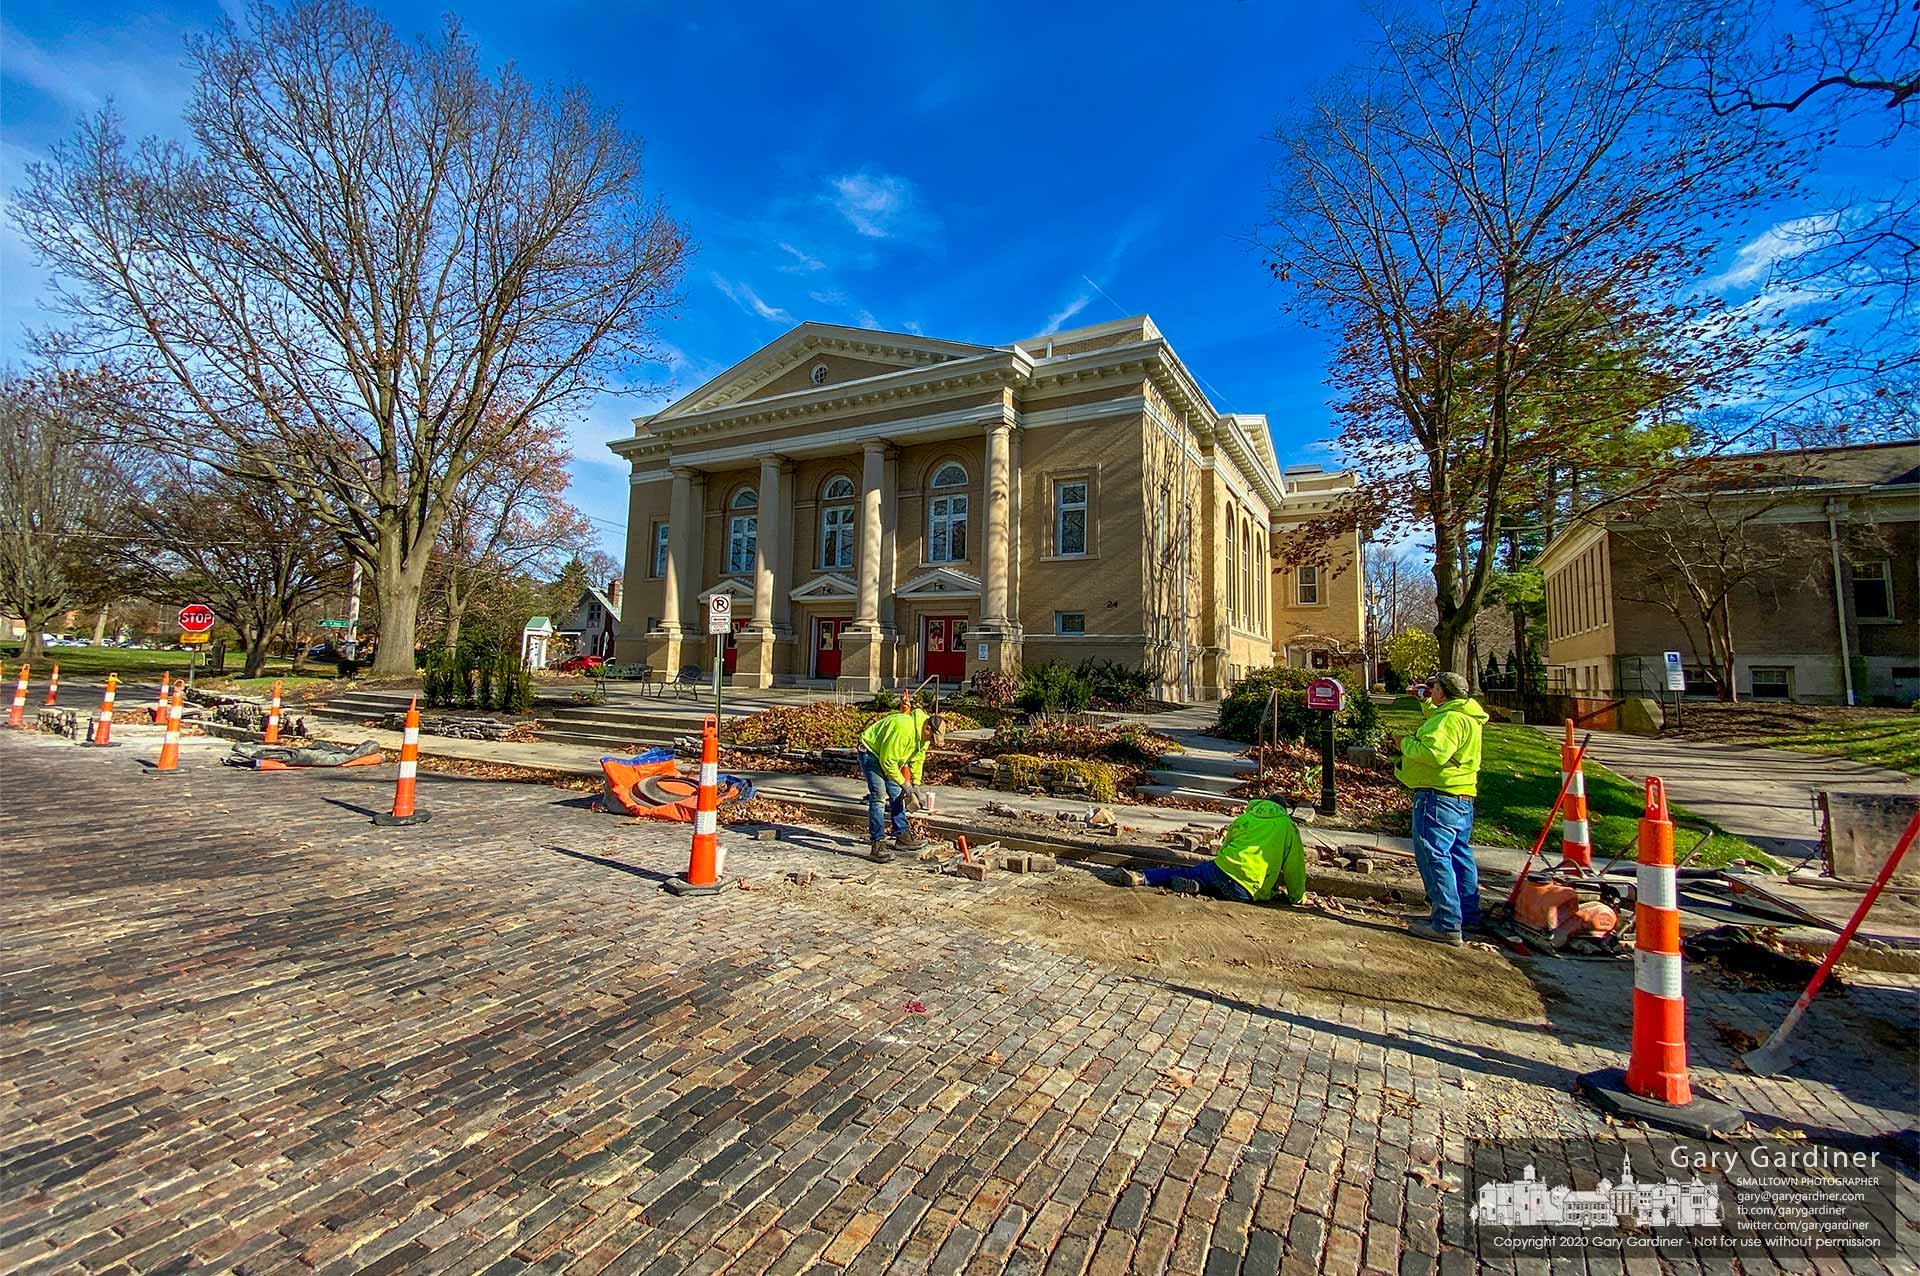 A work crew returns brick pavers to a section of Grove Street after making repairs to the damaged and uneven underlayer. My Final Photo for Nov. 19, 2020.